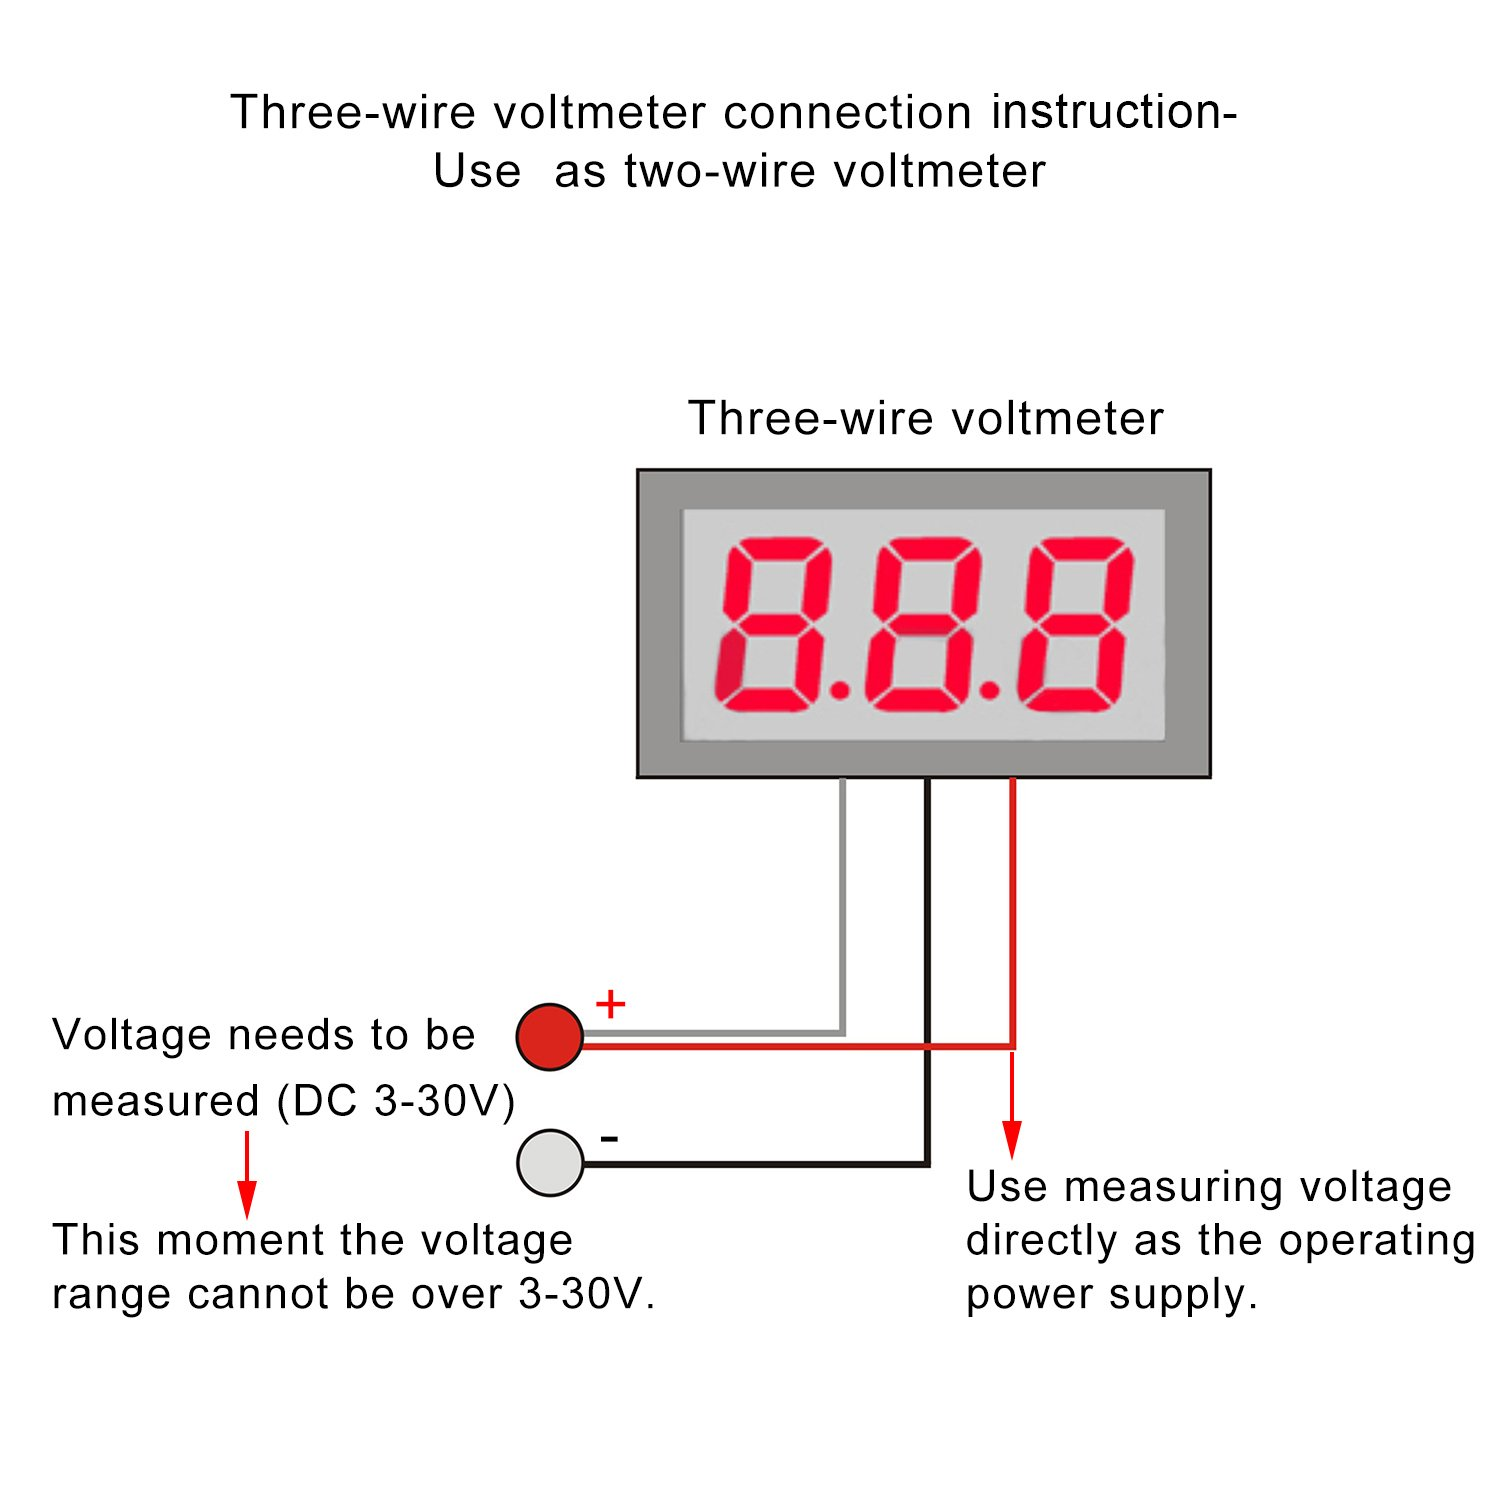 3 wire voltmeter wiring diagram   31 wiring diagram images